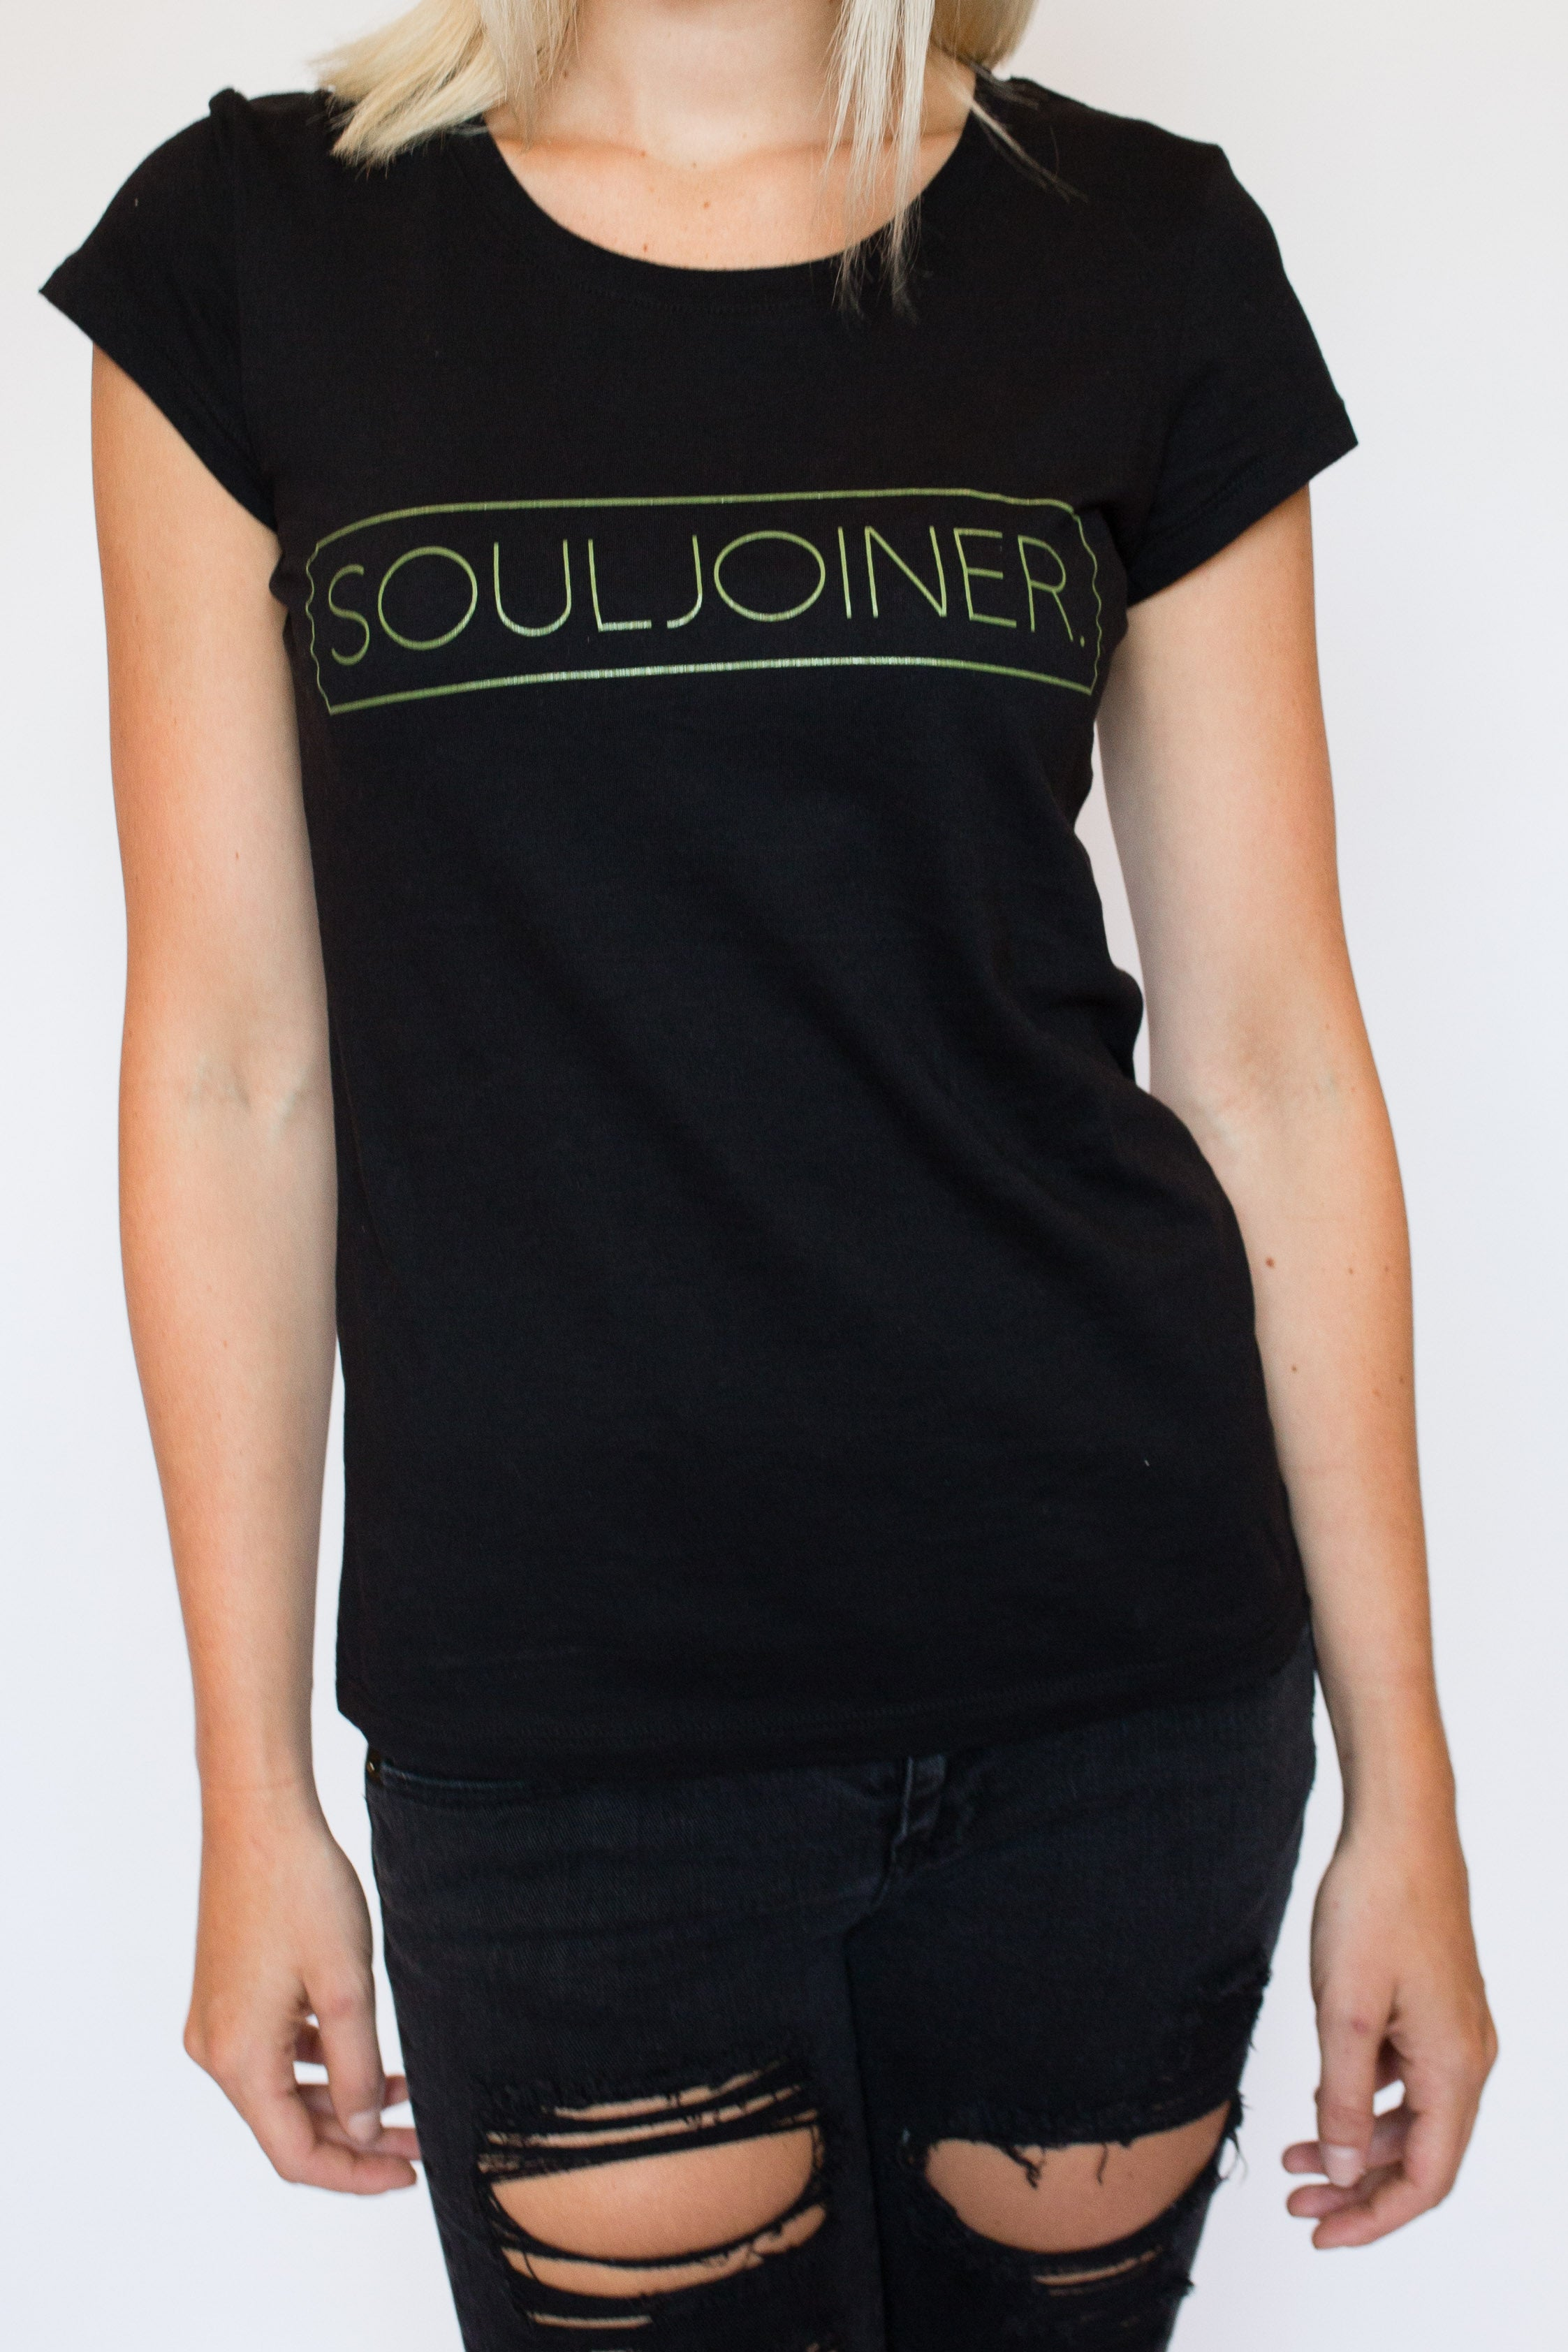 WOMEN'S BOX LOGO TEE - Soul Joiner